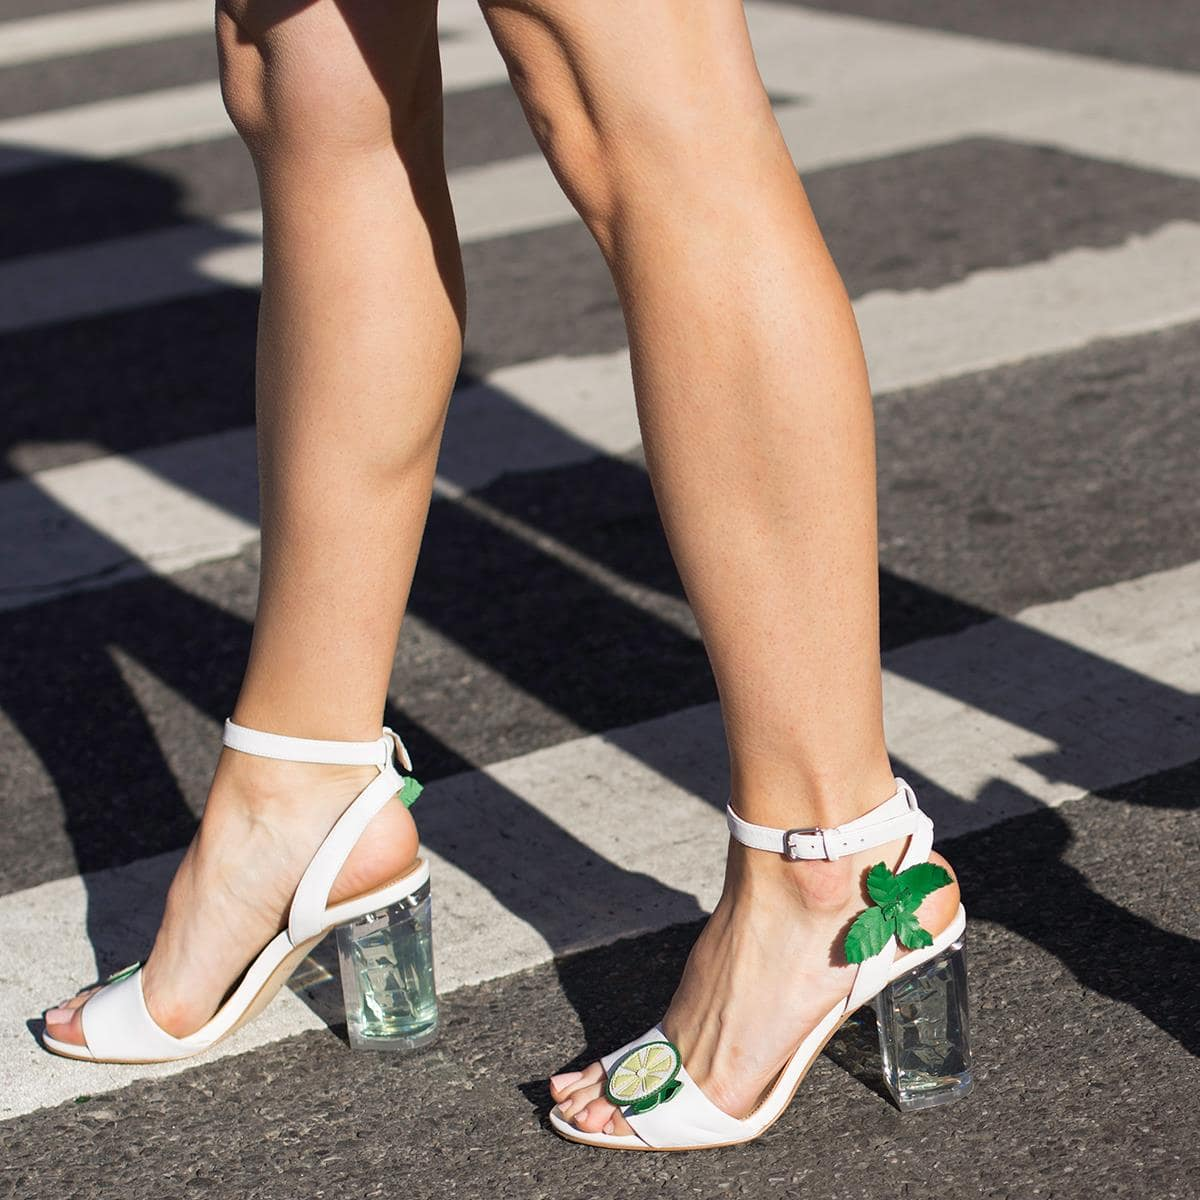 Mojito-inspired, these strappy sandals bring happy hour to a whole new level